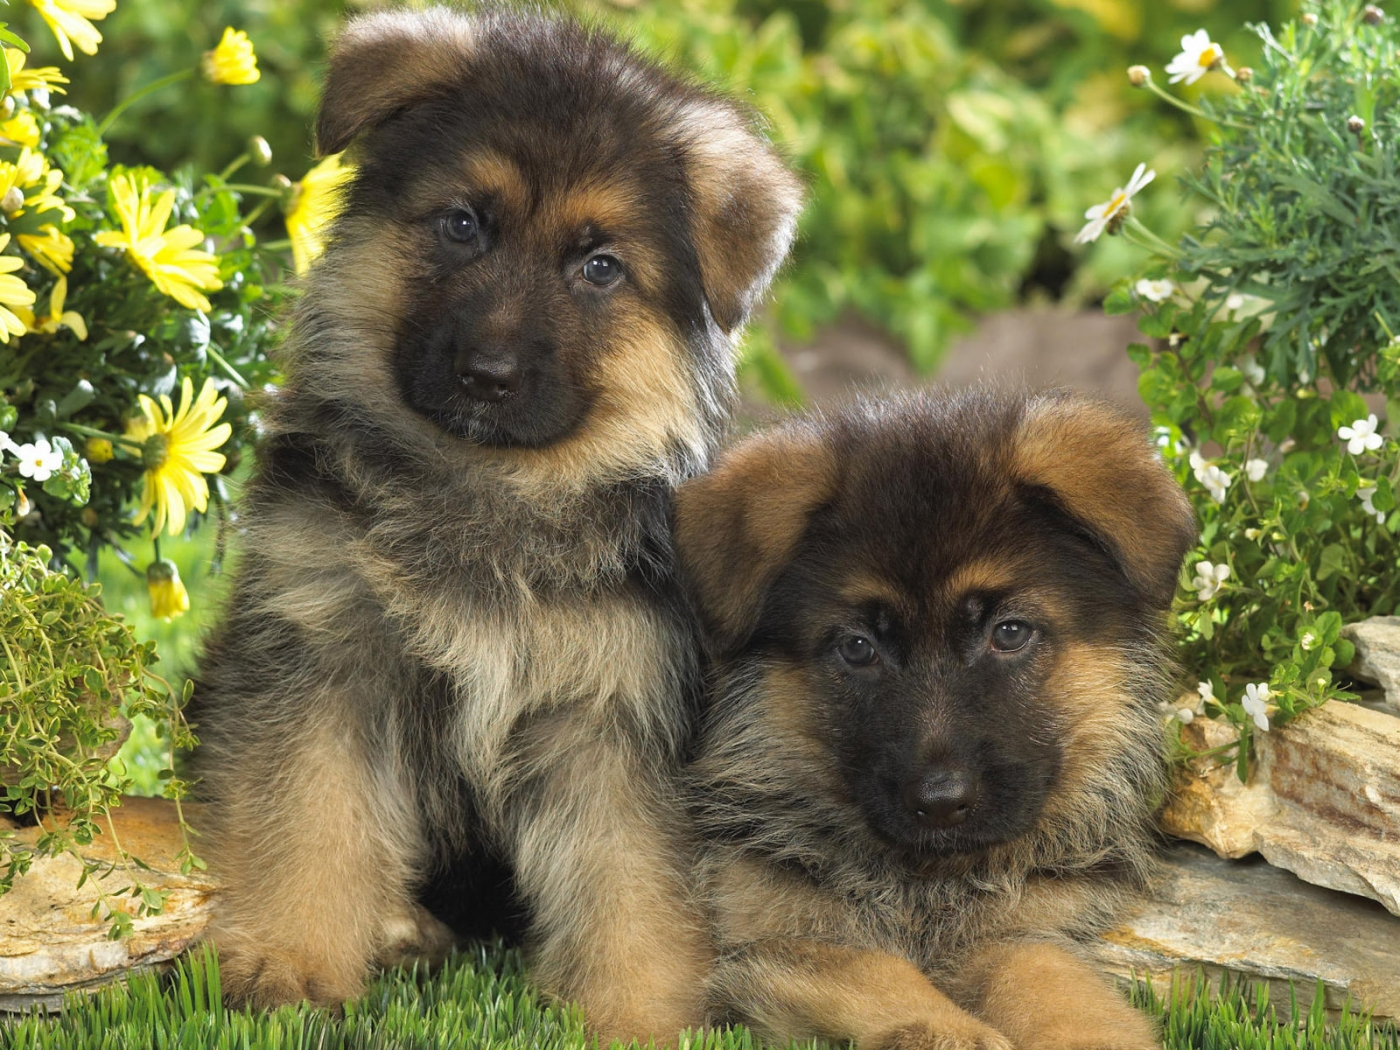 34896 download wallpaper Animals, Dogs screensavers and pictures for free